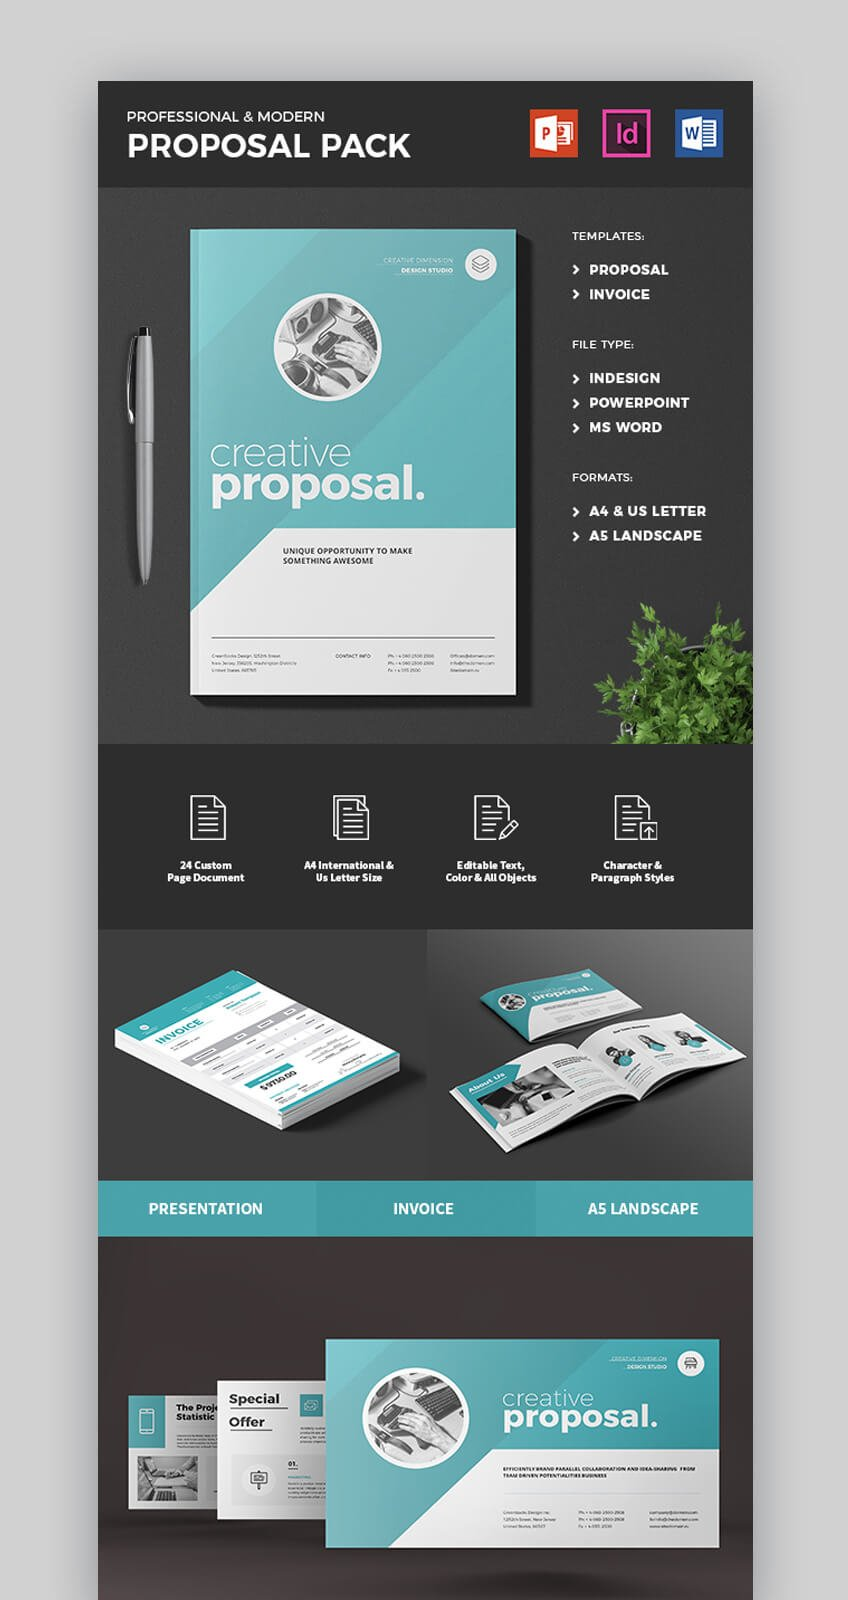 Proposal Pack